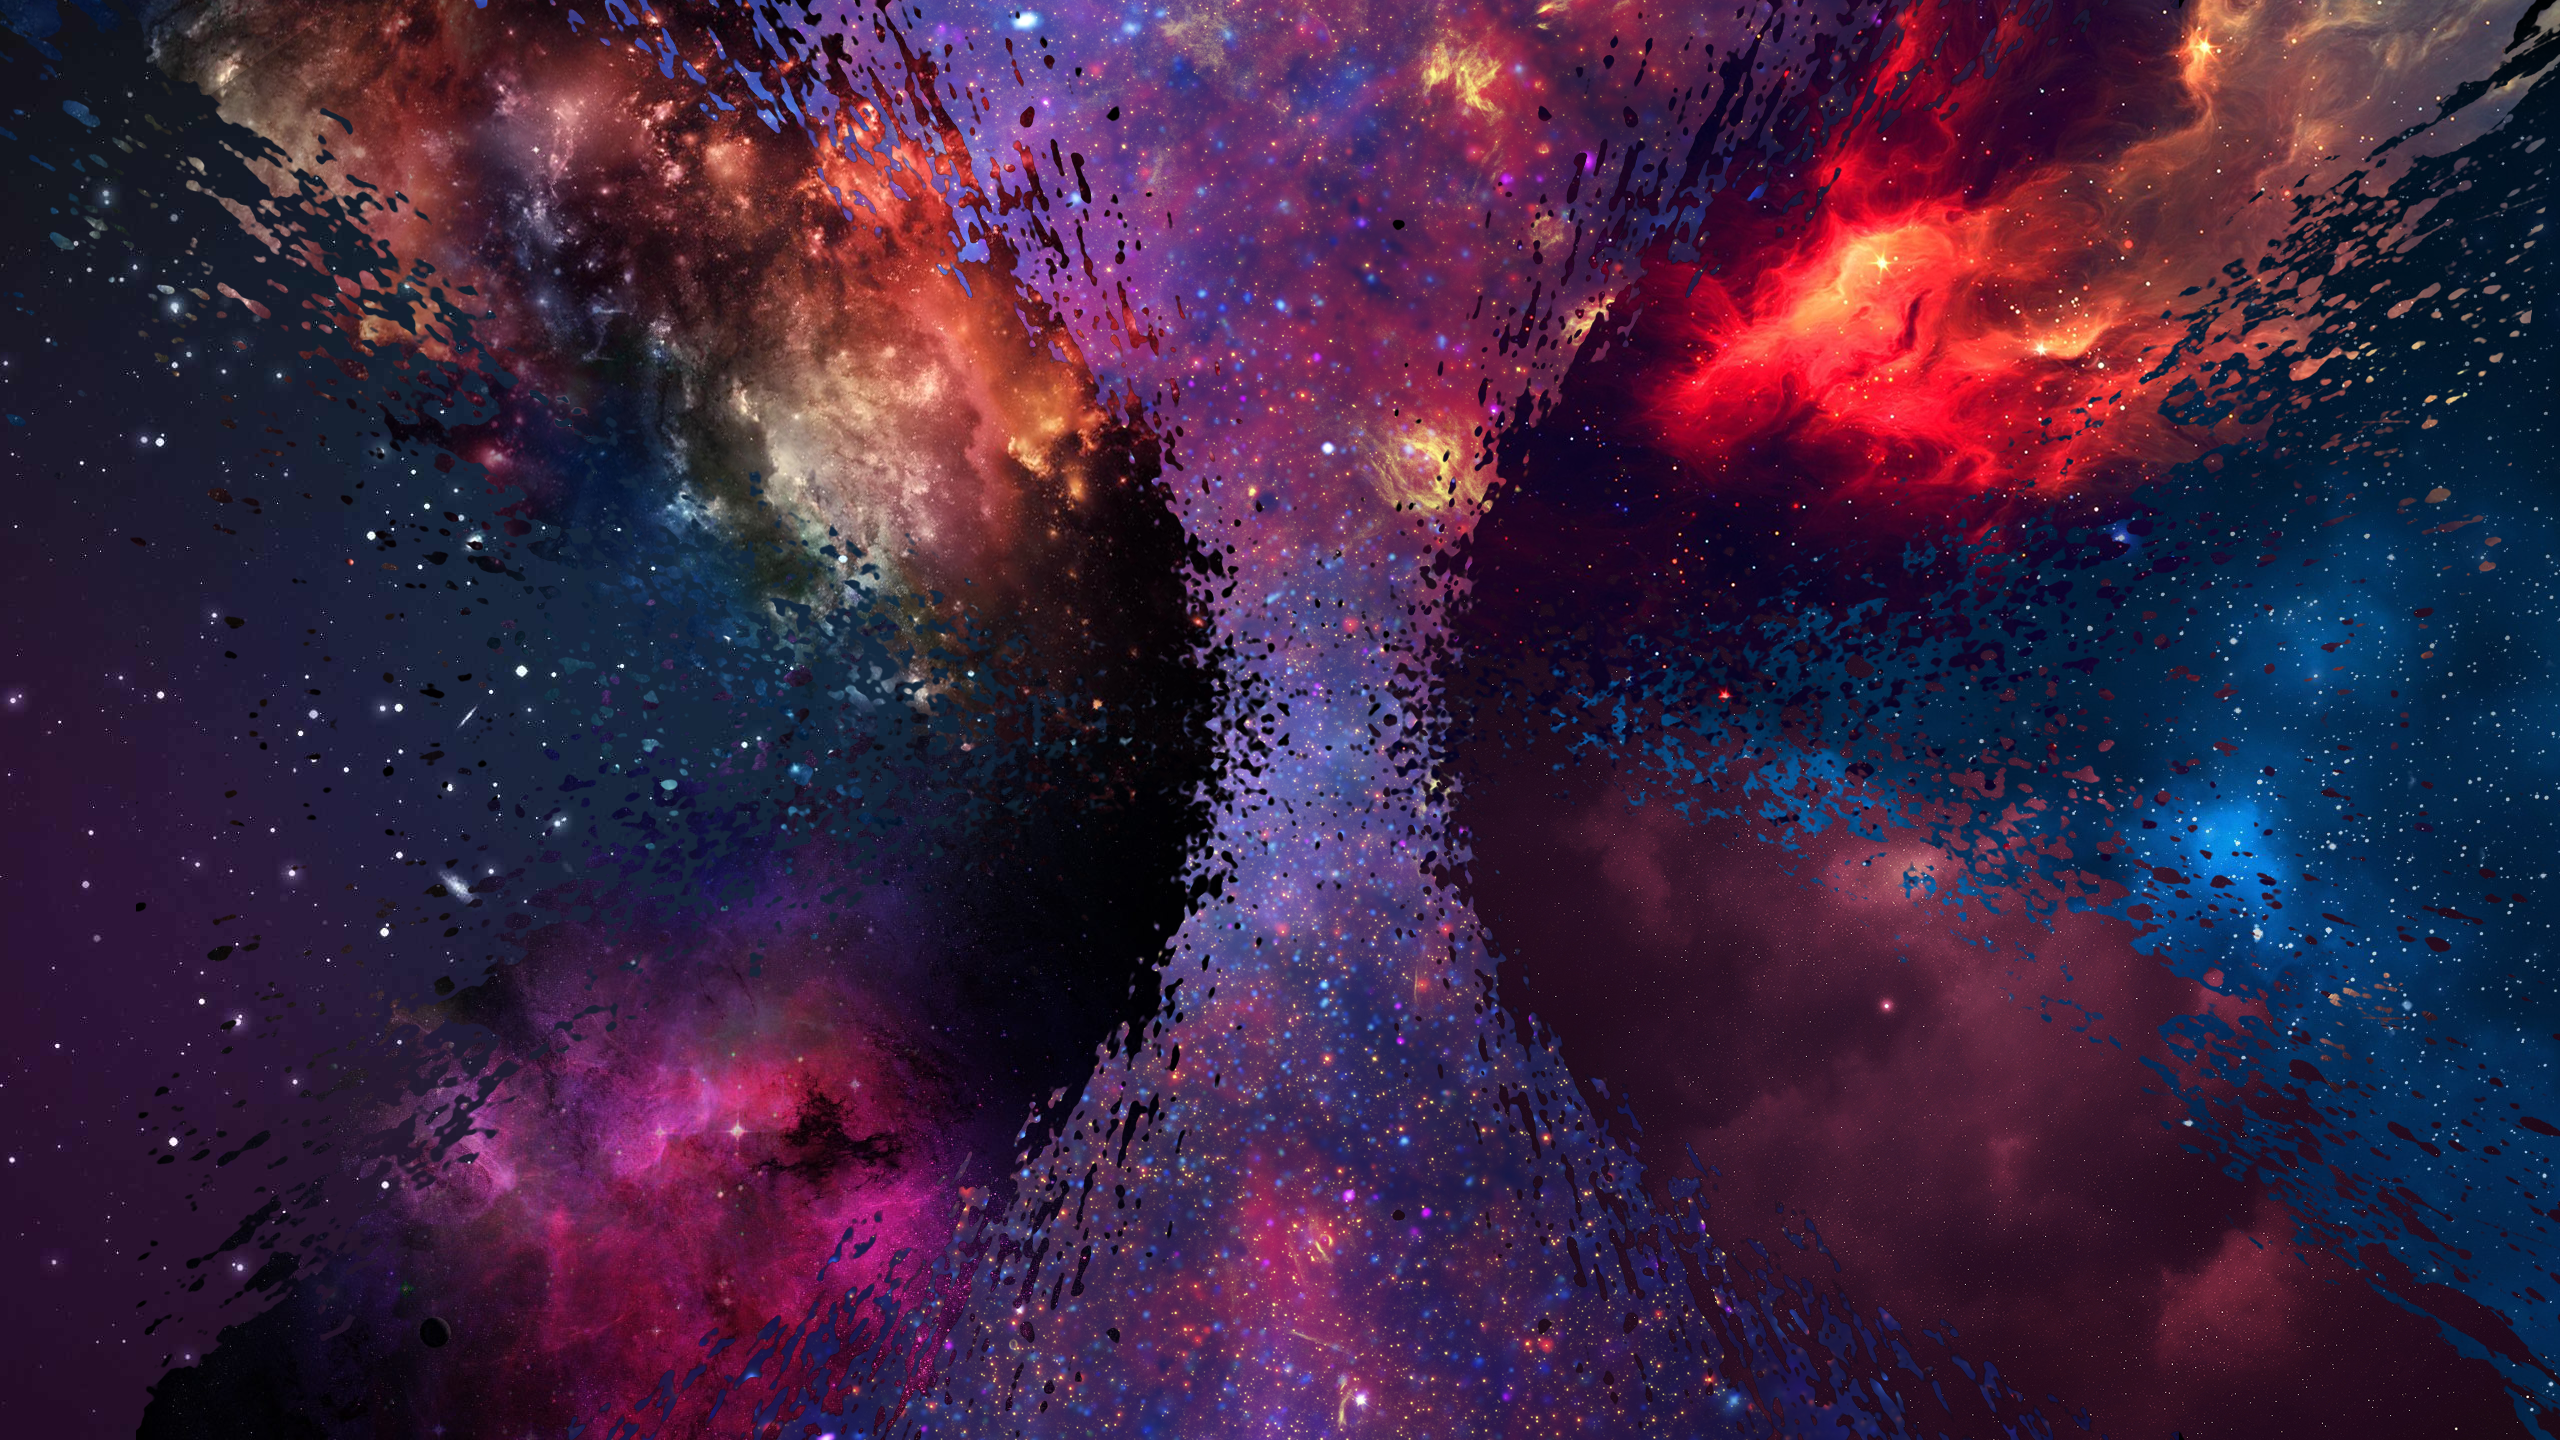 space, shattered, milky way, nova, galaxy, spray - wallpaper #94342